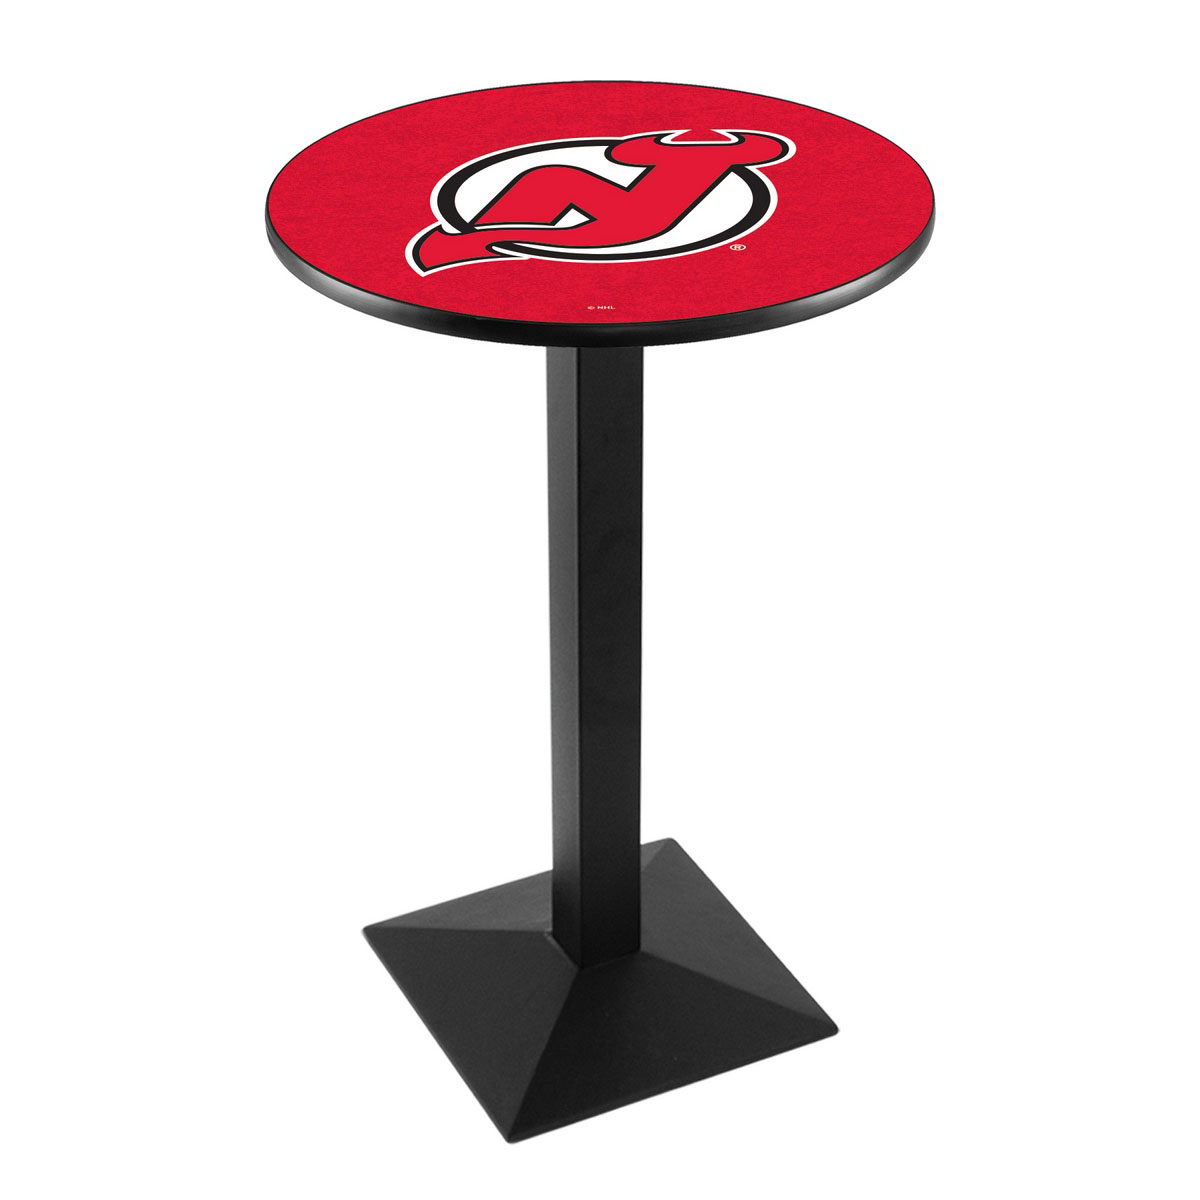 Trustworthy New Jersey Devils Logo Pub Bar Table Square Stand Product Photo